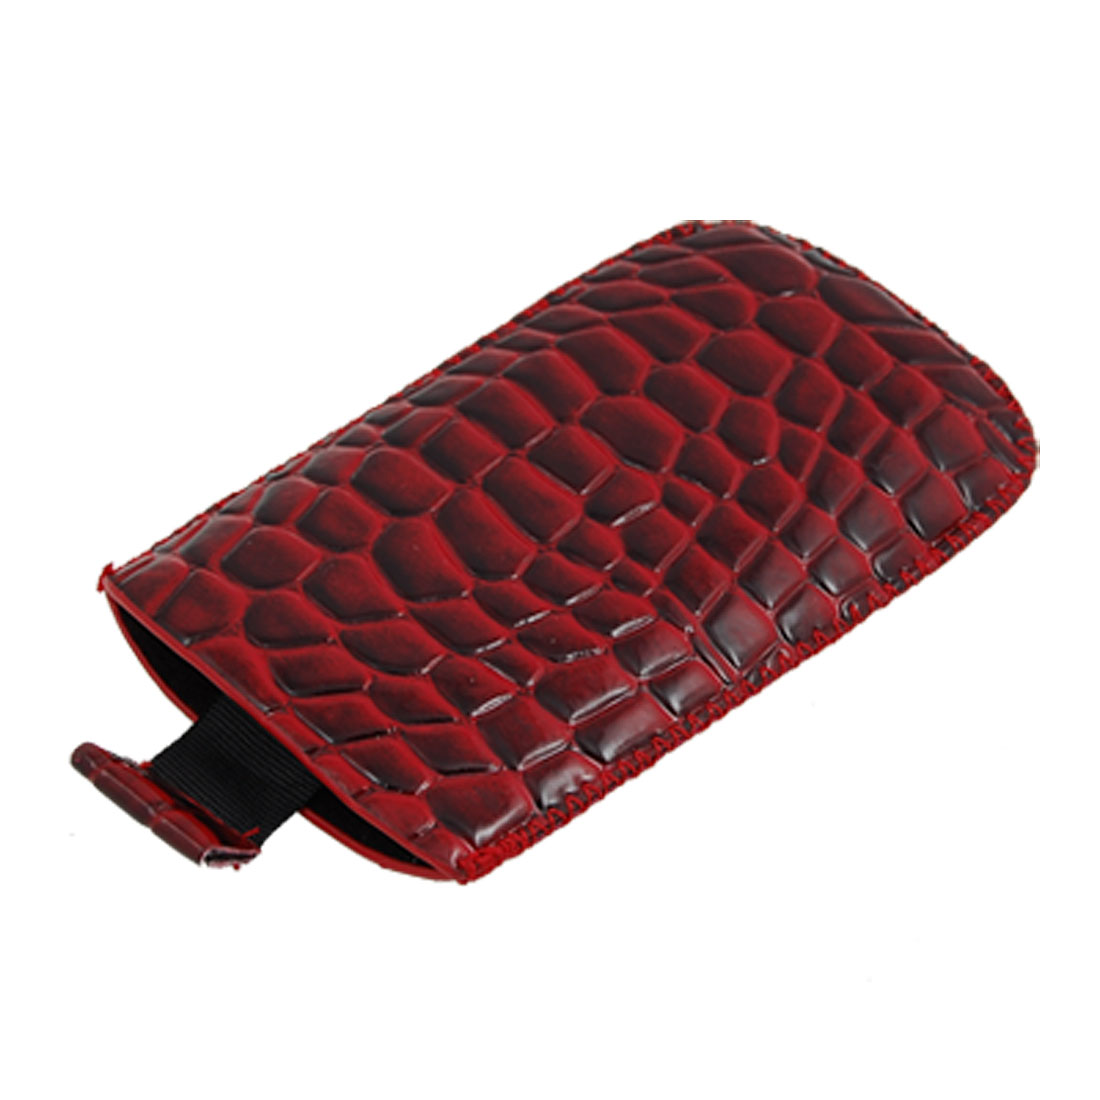 Black Red Snakeskin Style Faux Leather Pull Up Cover for Nokia 5800